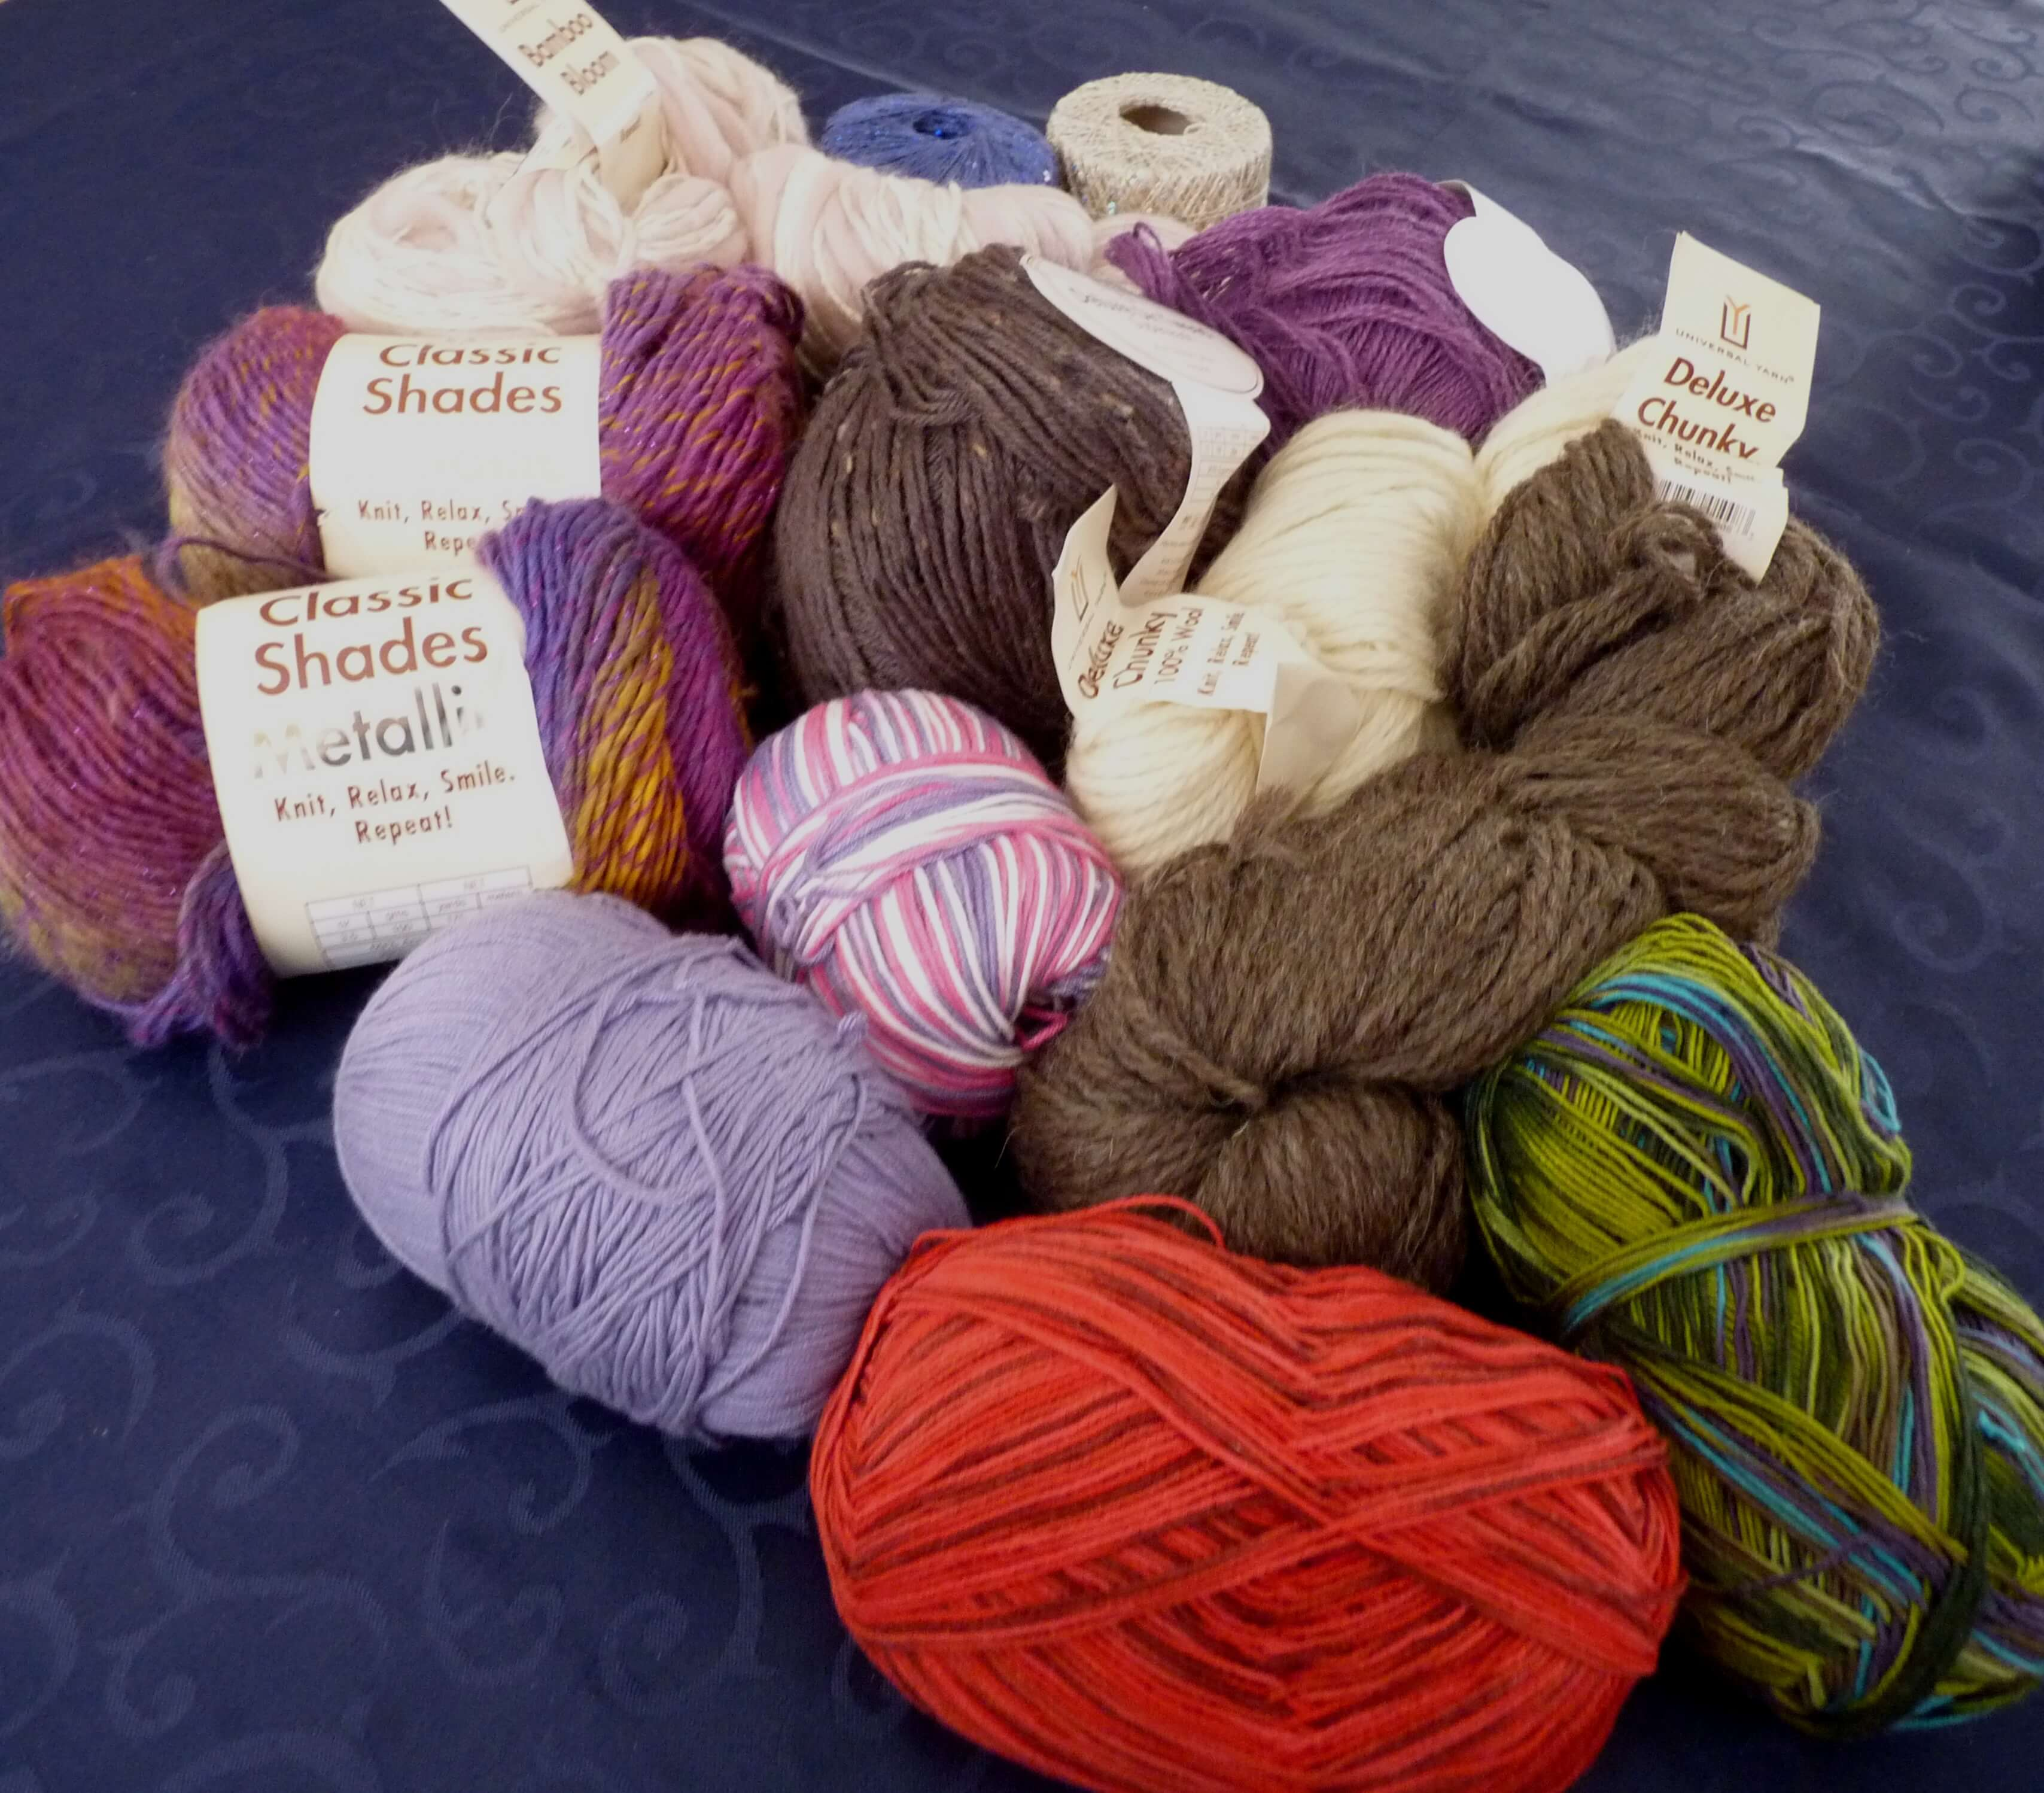 A jumble of yarns of various colours, some in balls (sock yarn, worsted weight in a purple variegated yarn) and skeins (Bamboo bloom and natural chunky in natural white and brown.